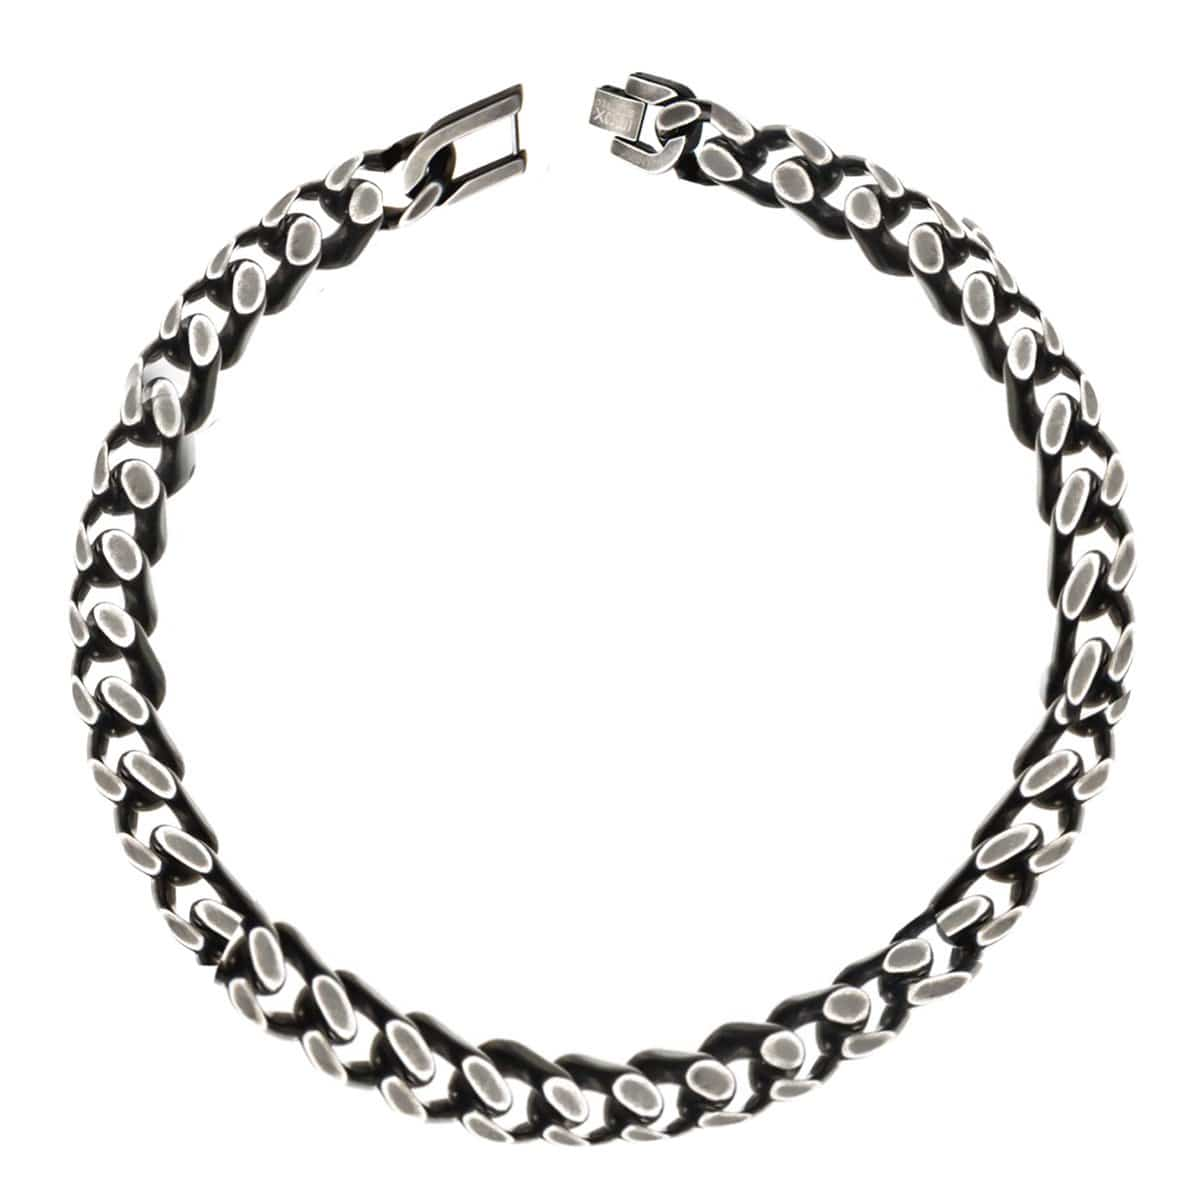 Silver Stainless Steel Oxidized Finish 11mm Diamond Cut Link Chain Bracelet